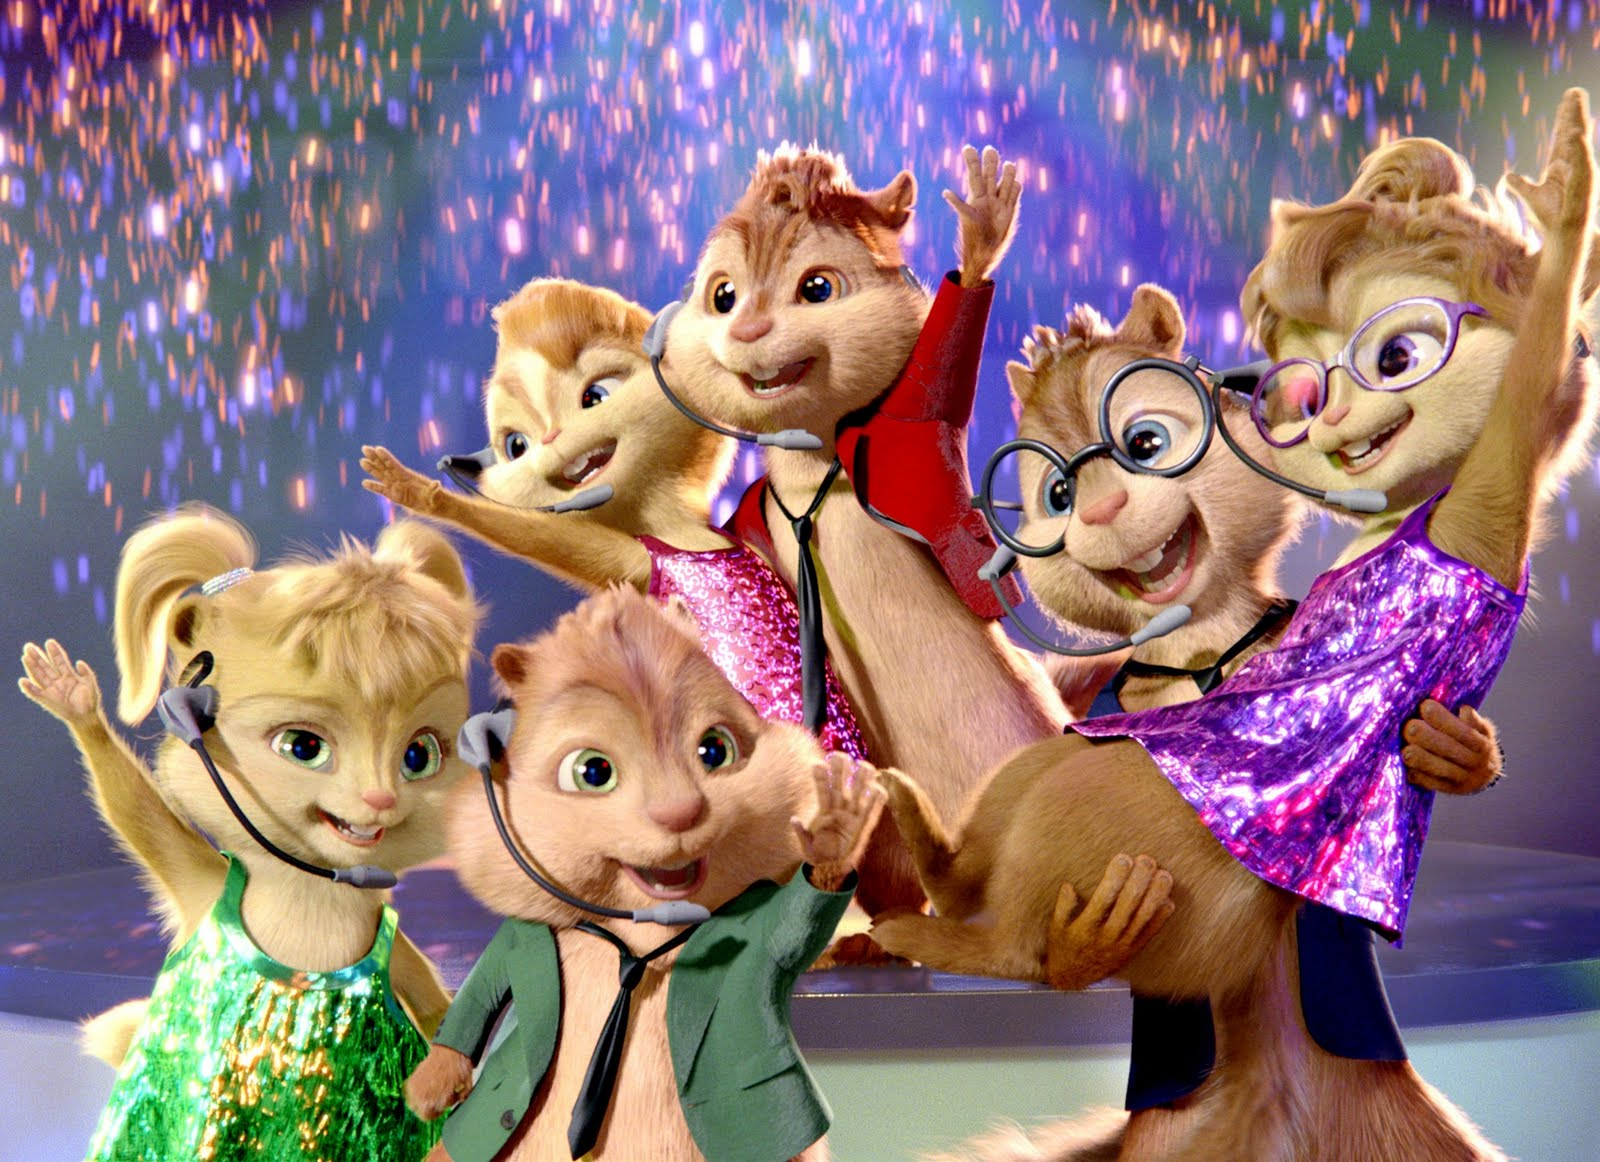 Alvin And The Chipmunks 3 Images alvin & the chipmunks: chipwrecked movie review